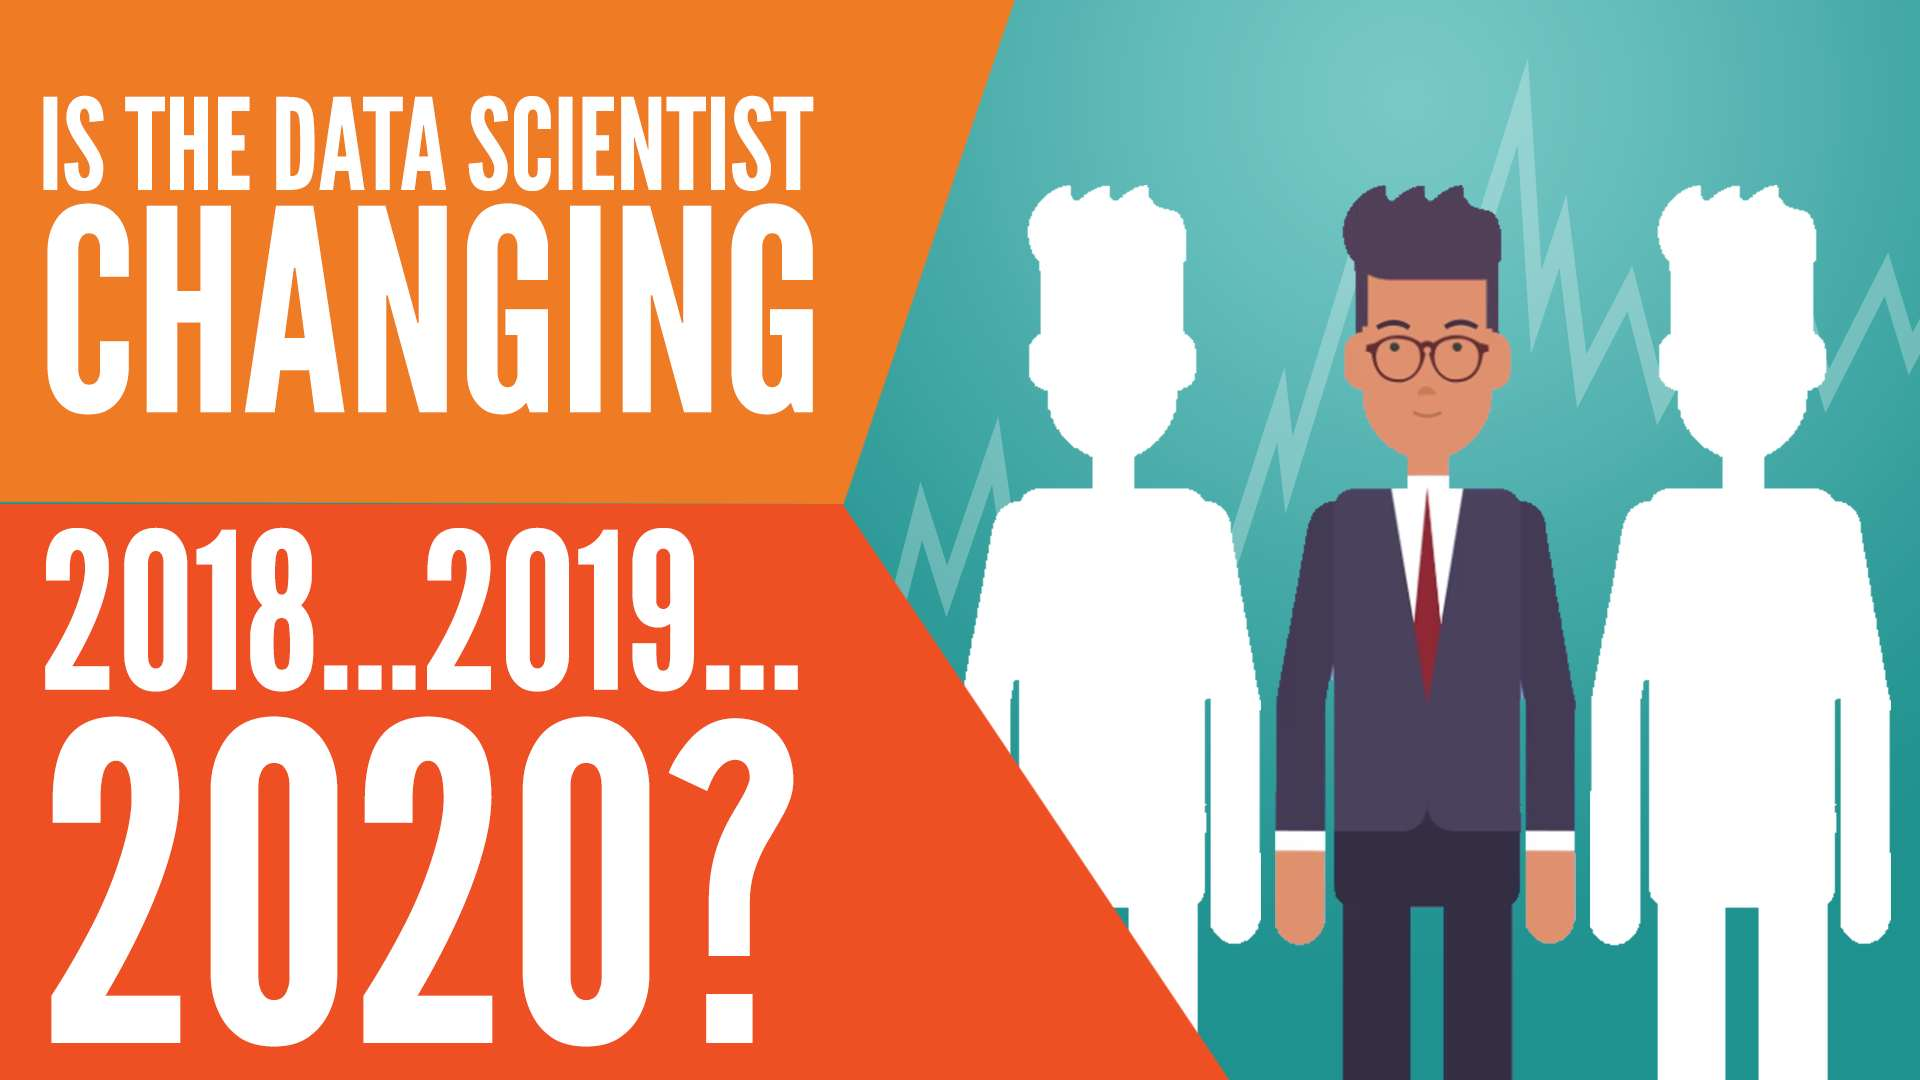 the data scientist from 2018 to 2020, what makes a data scientist from 2018 to 2020, has the data scientist changed from 2018 to 2020